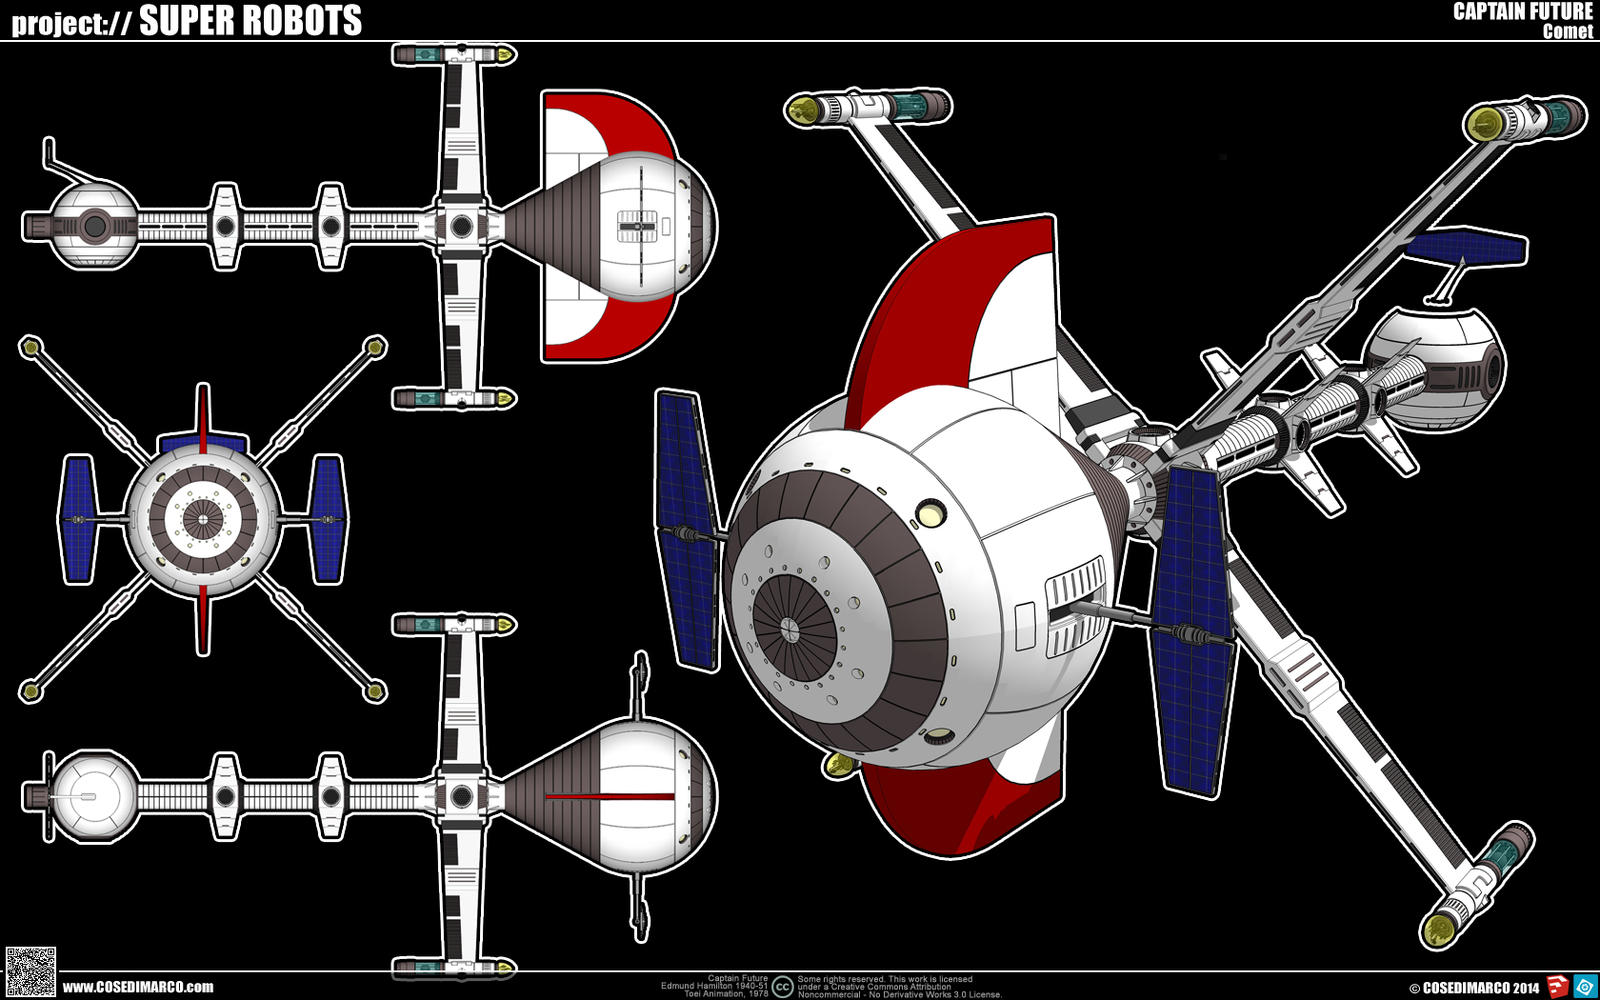 Captain Future S Comet Spaceship By Cosedimarco On Deviantart